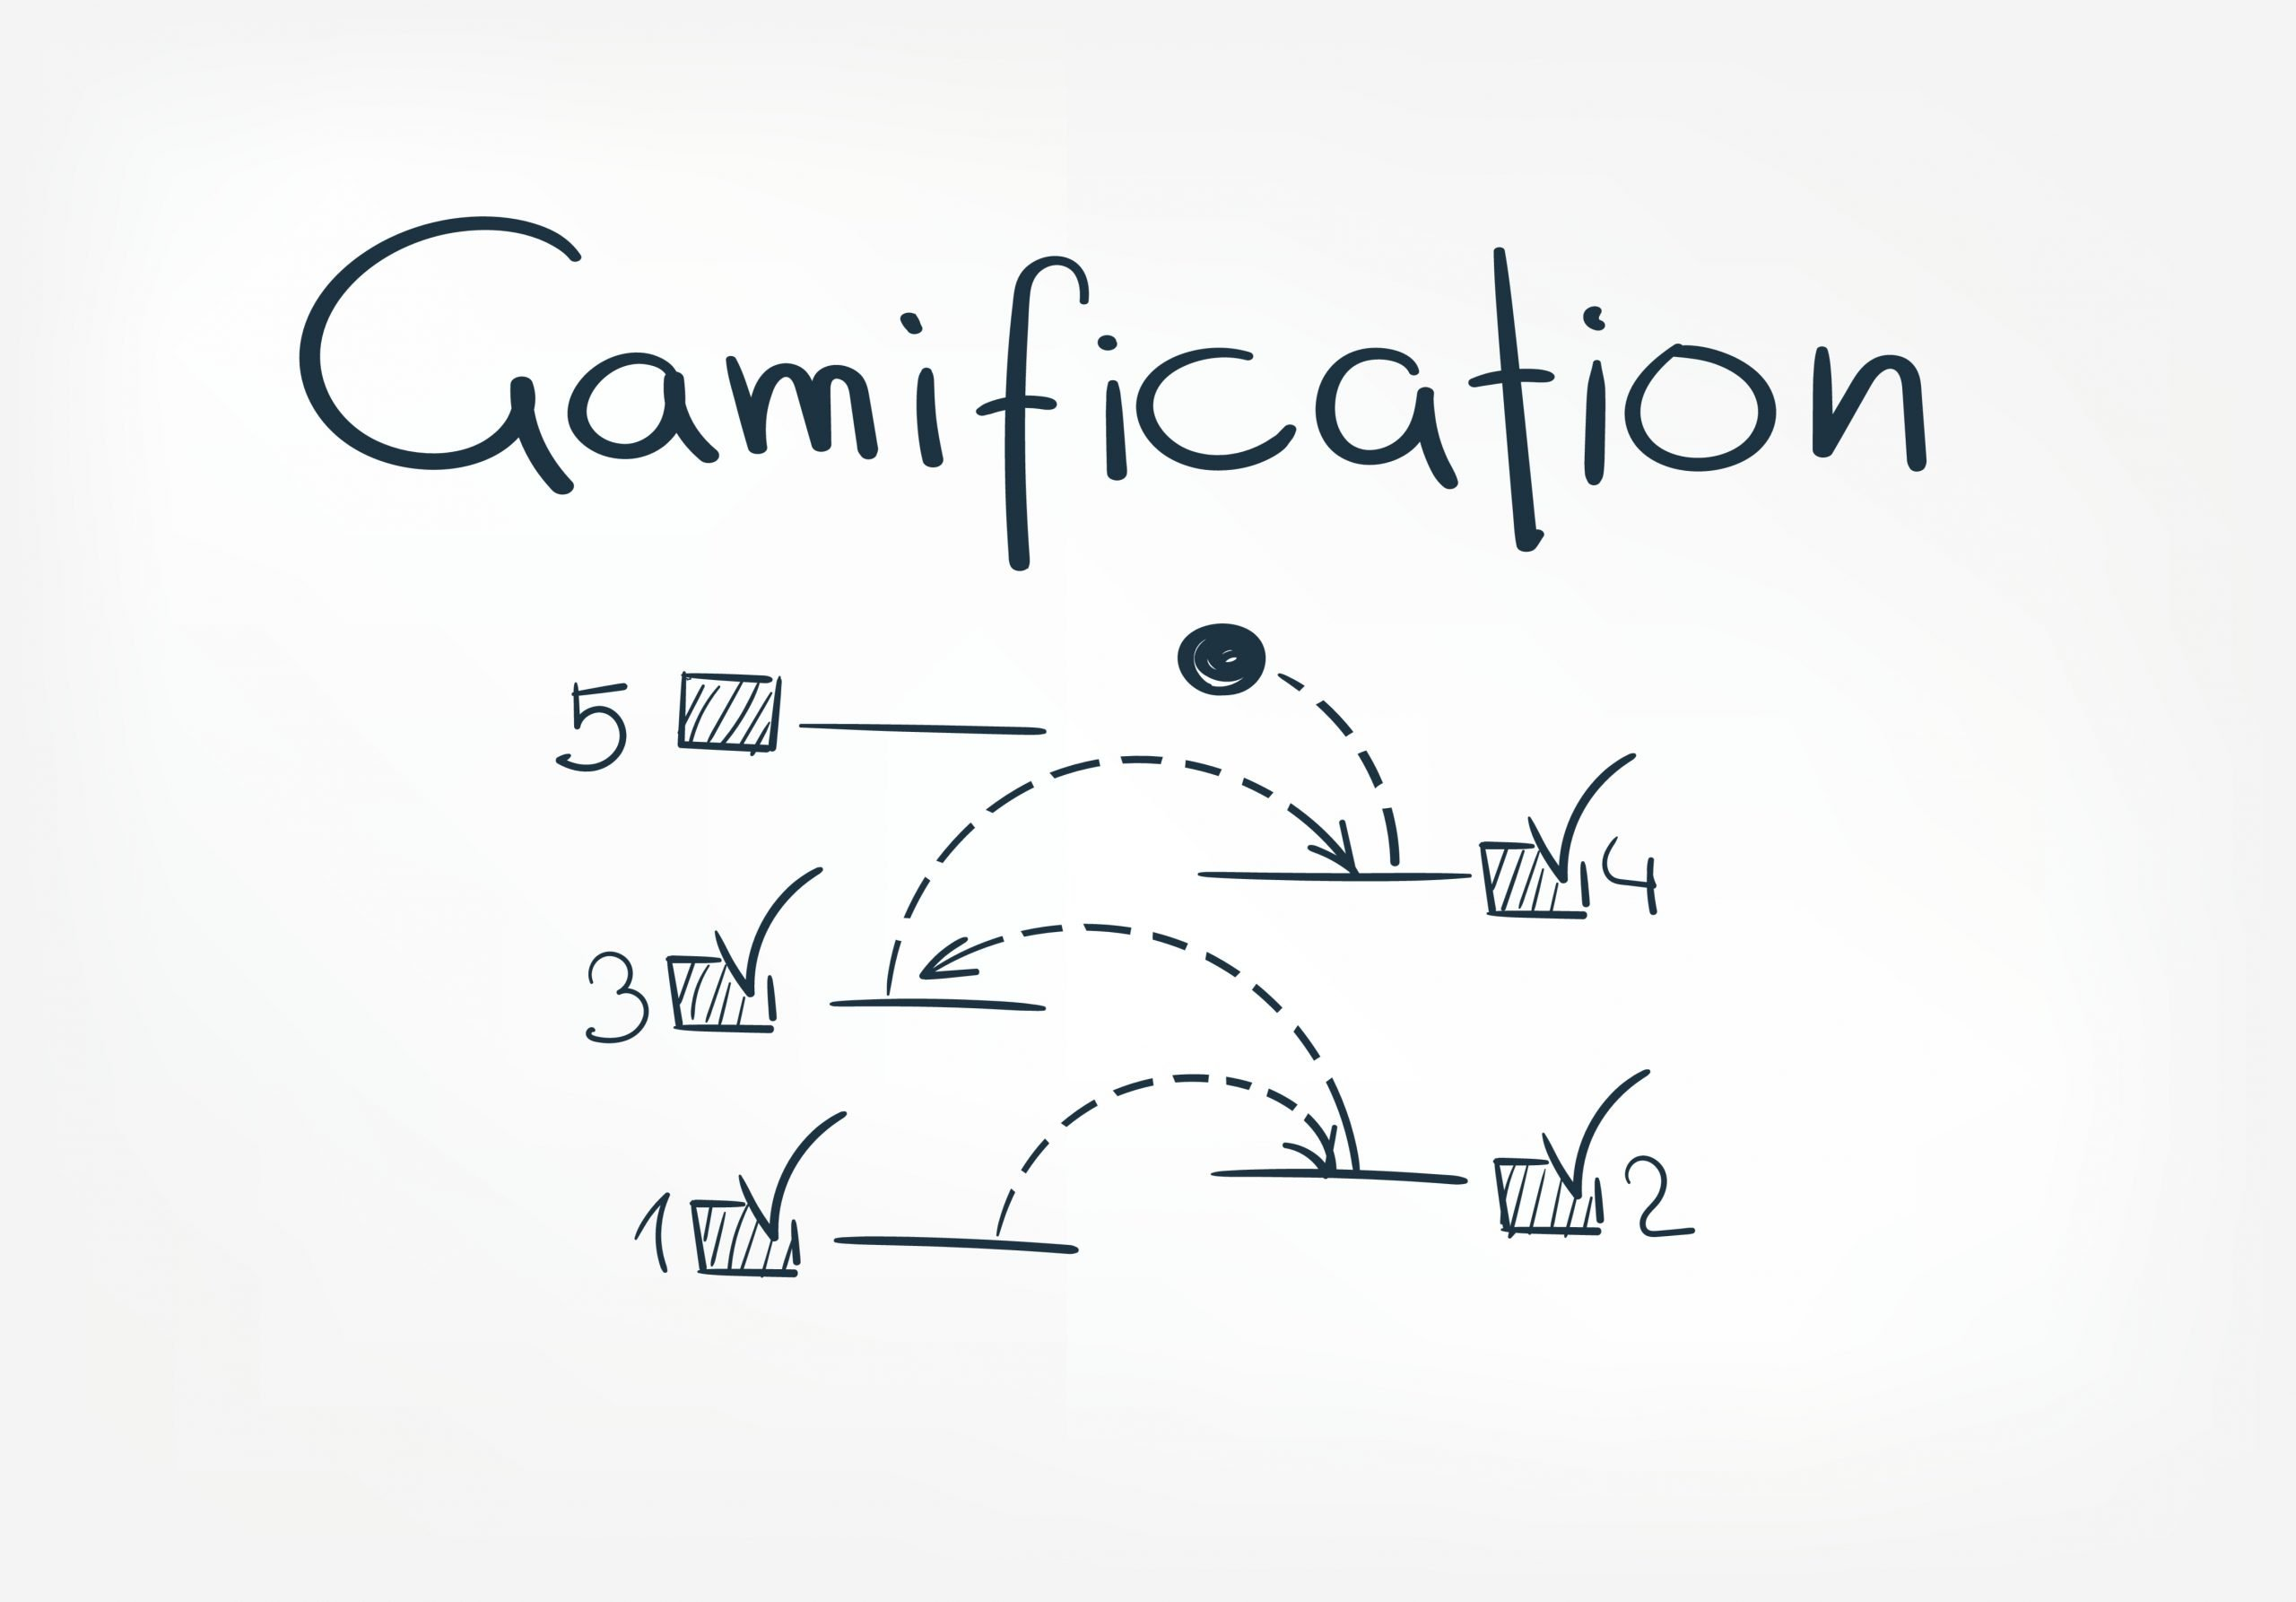 Che cos'è la Gamification